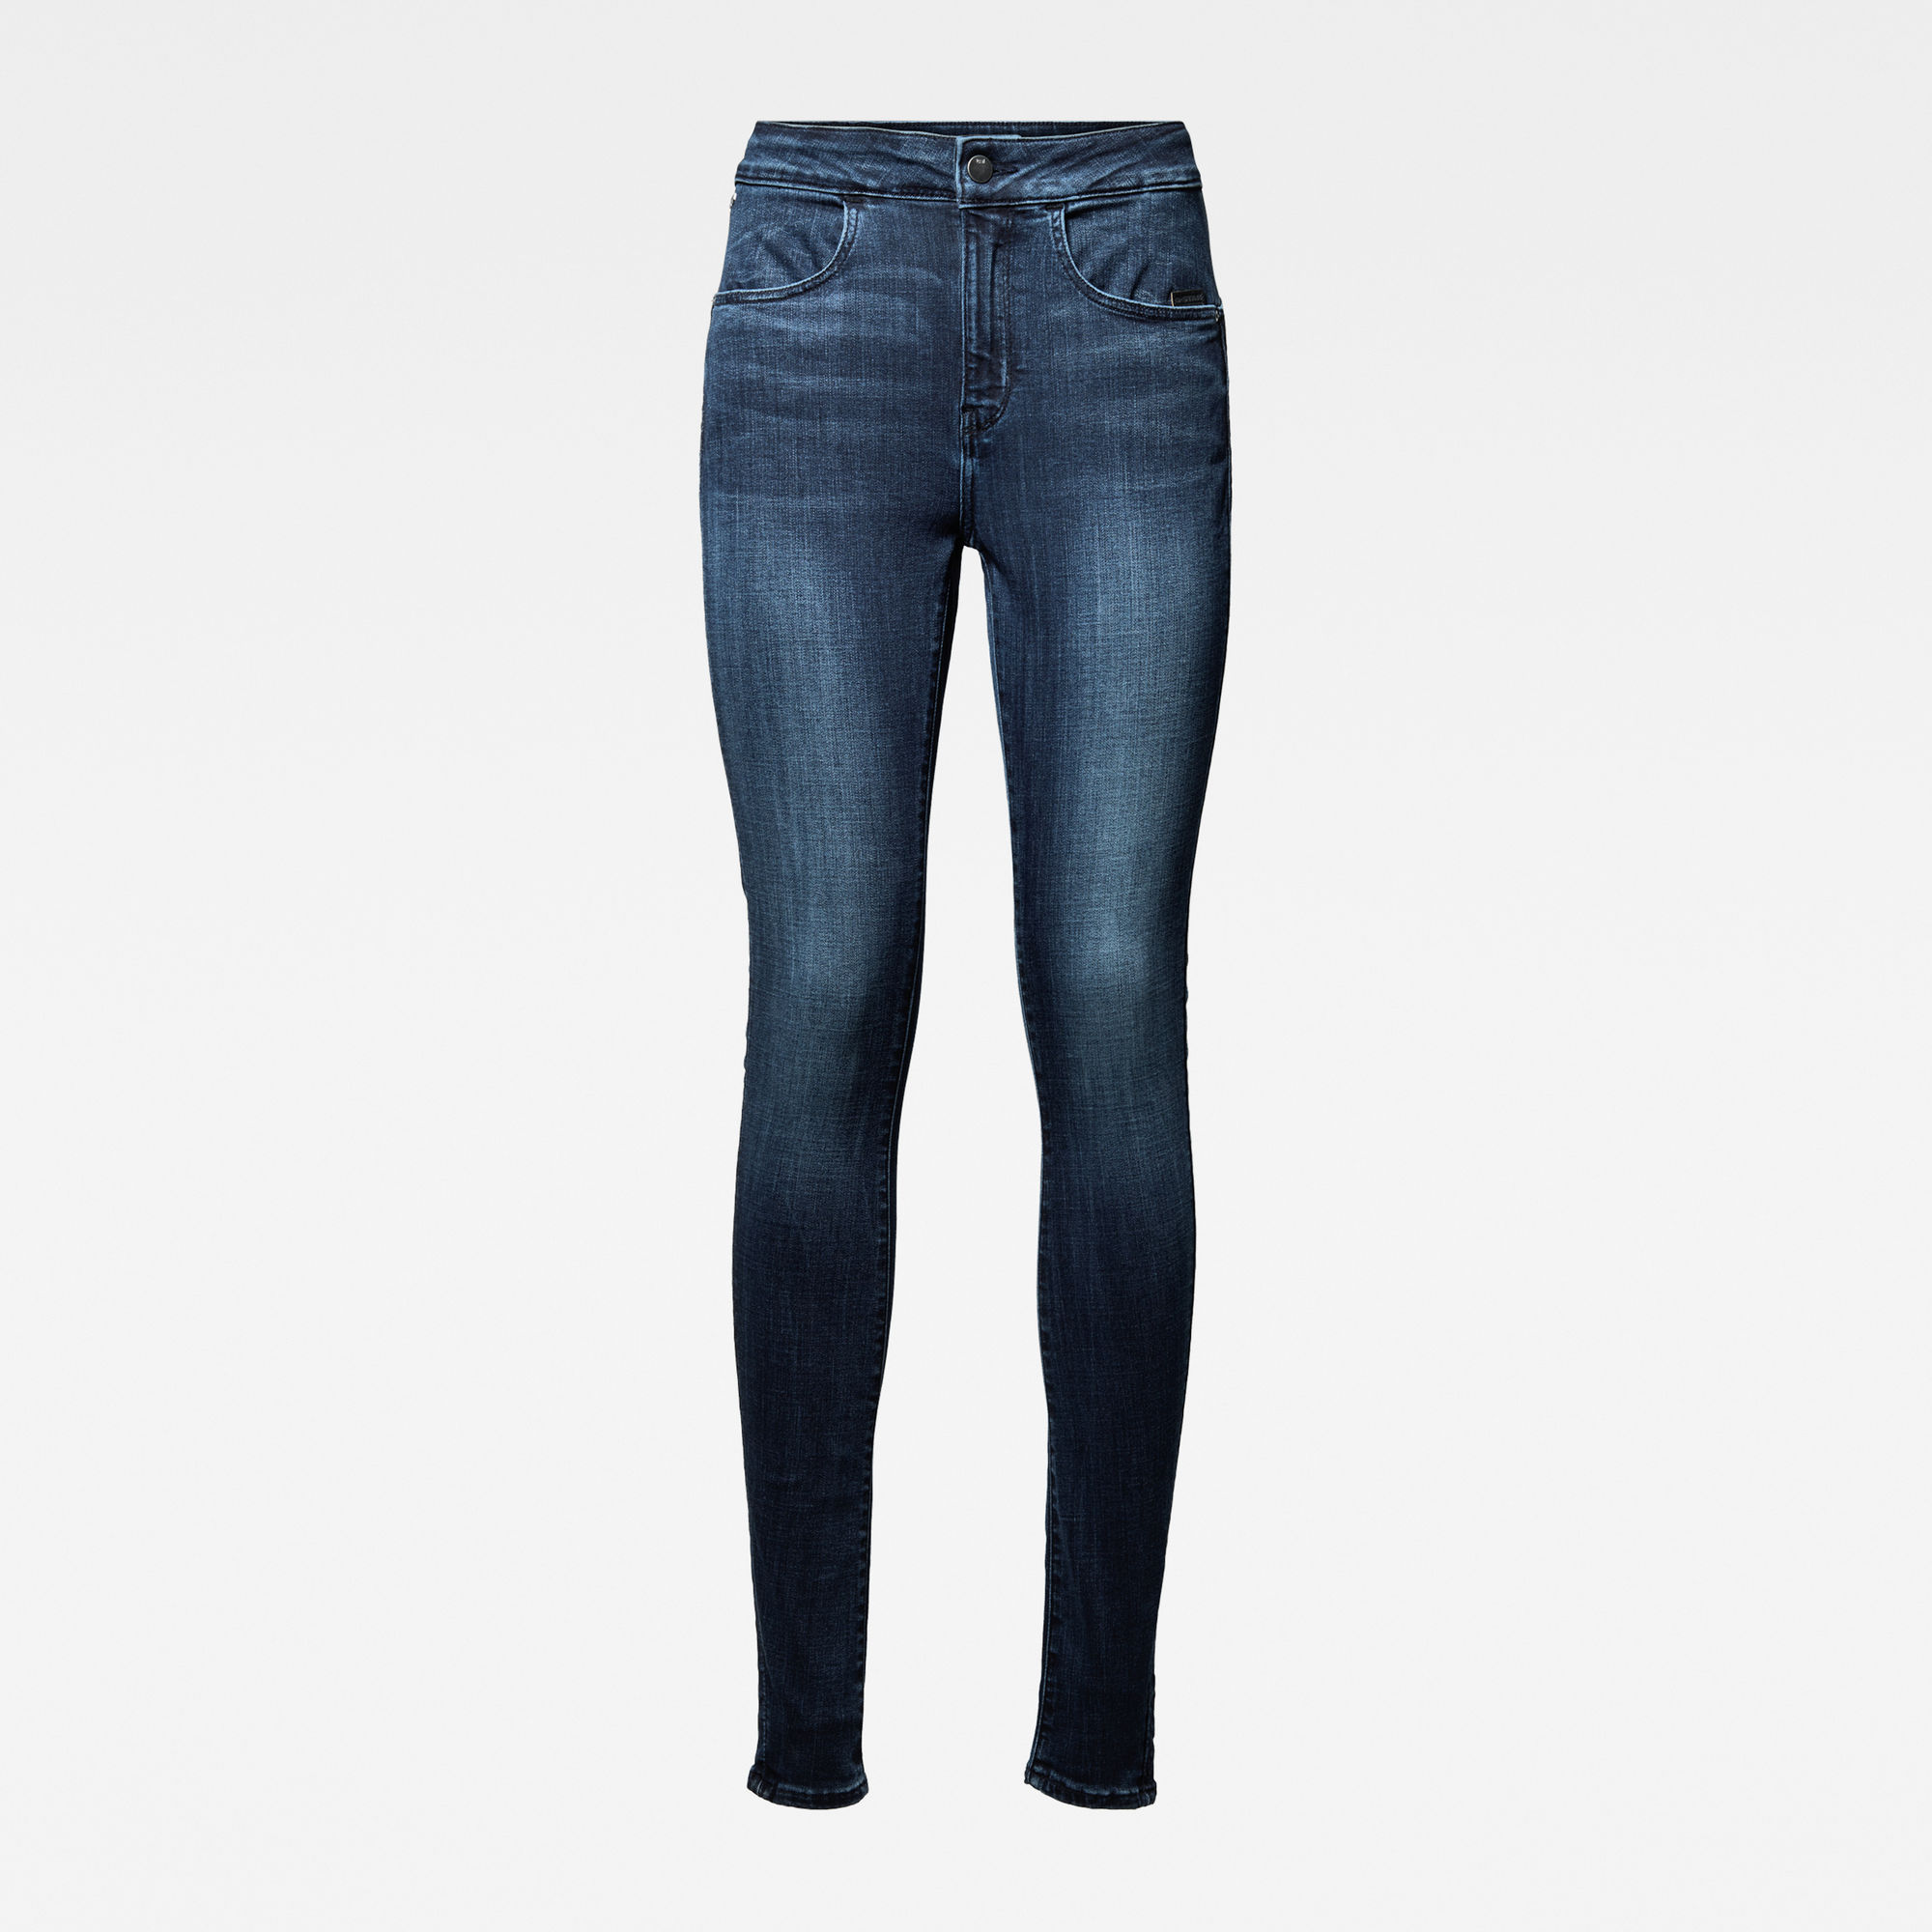 Jeans Citi-You High Super Skinny